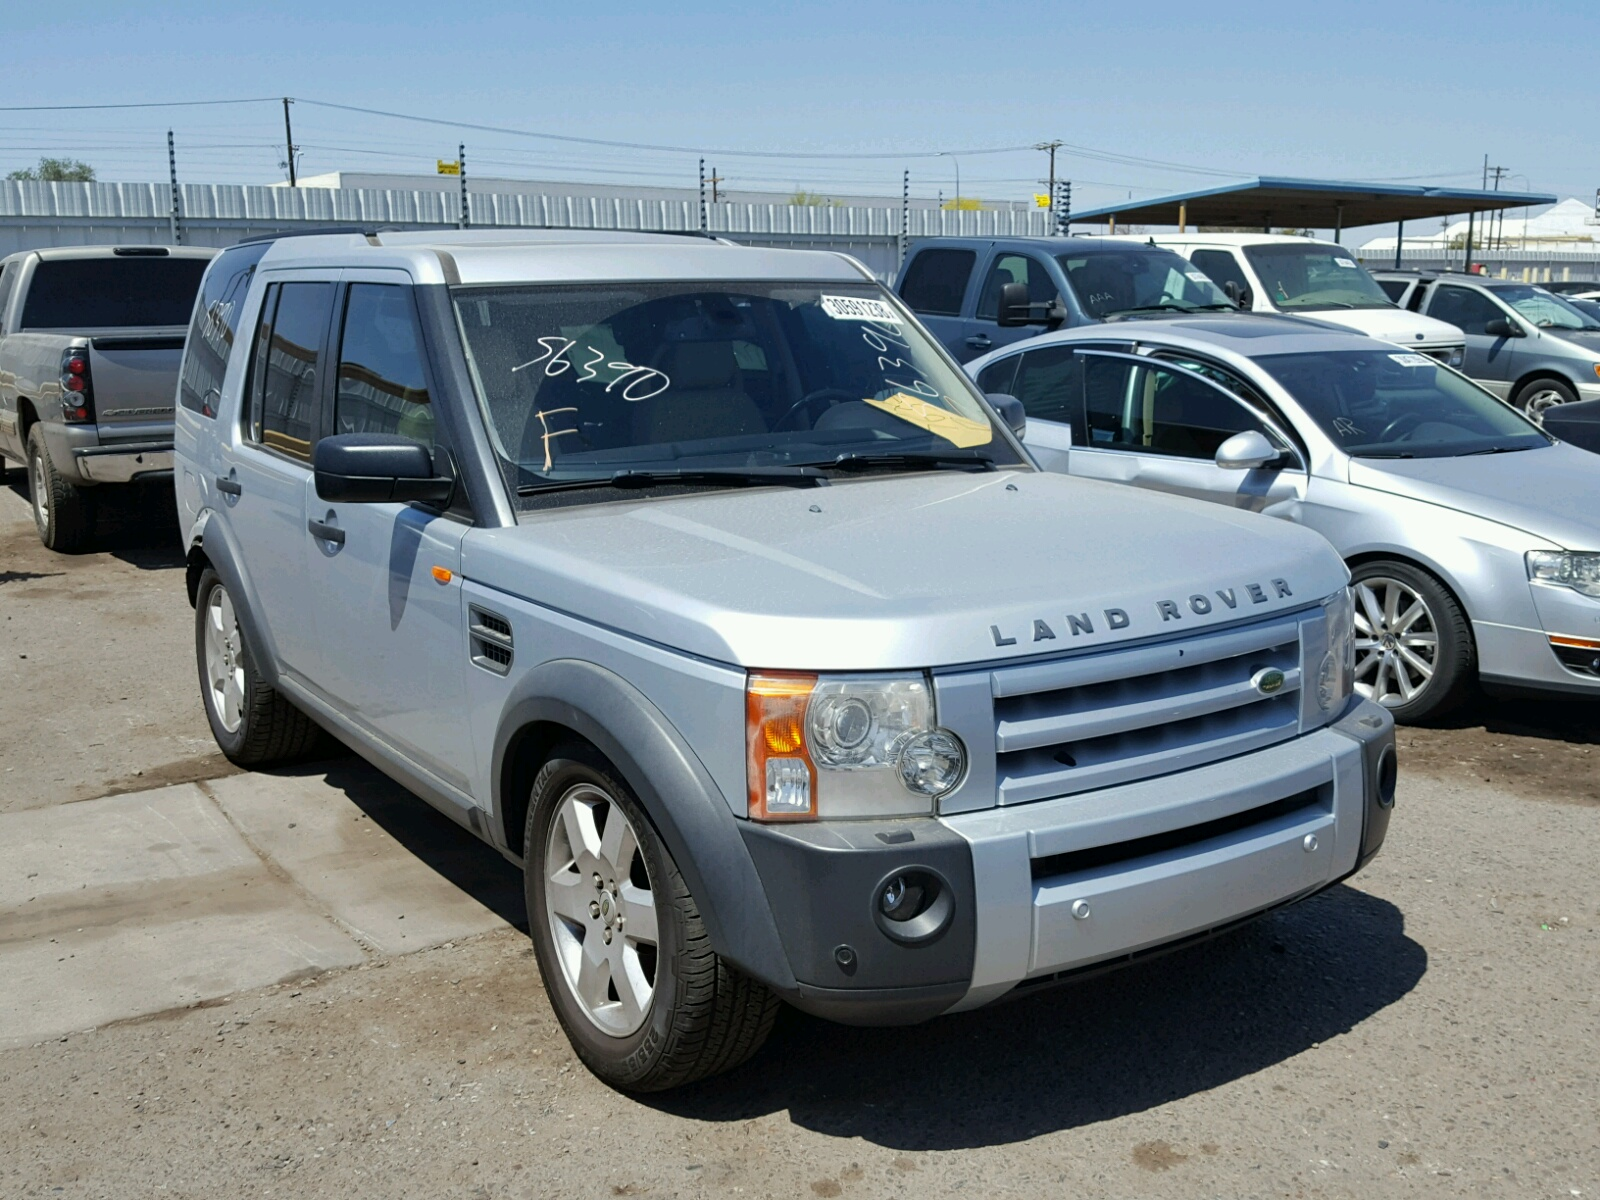 lot auto cert for of rover landrover title copart lansing gray vehicle in flood online se carfinder en on mi hse land auctions sale